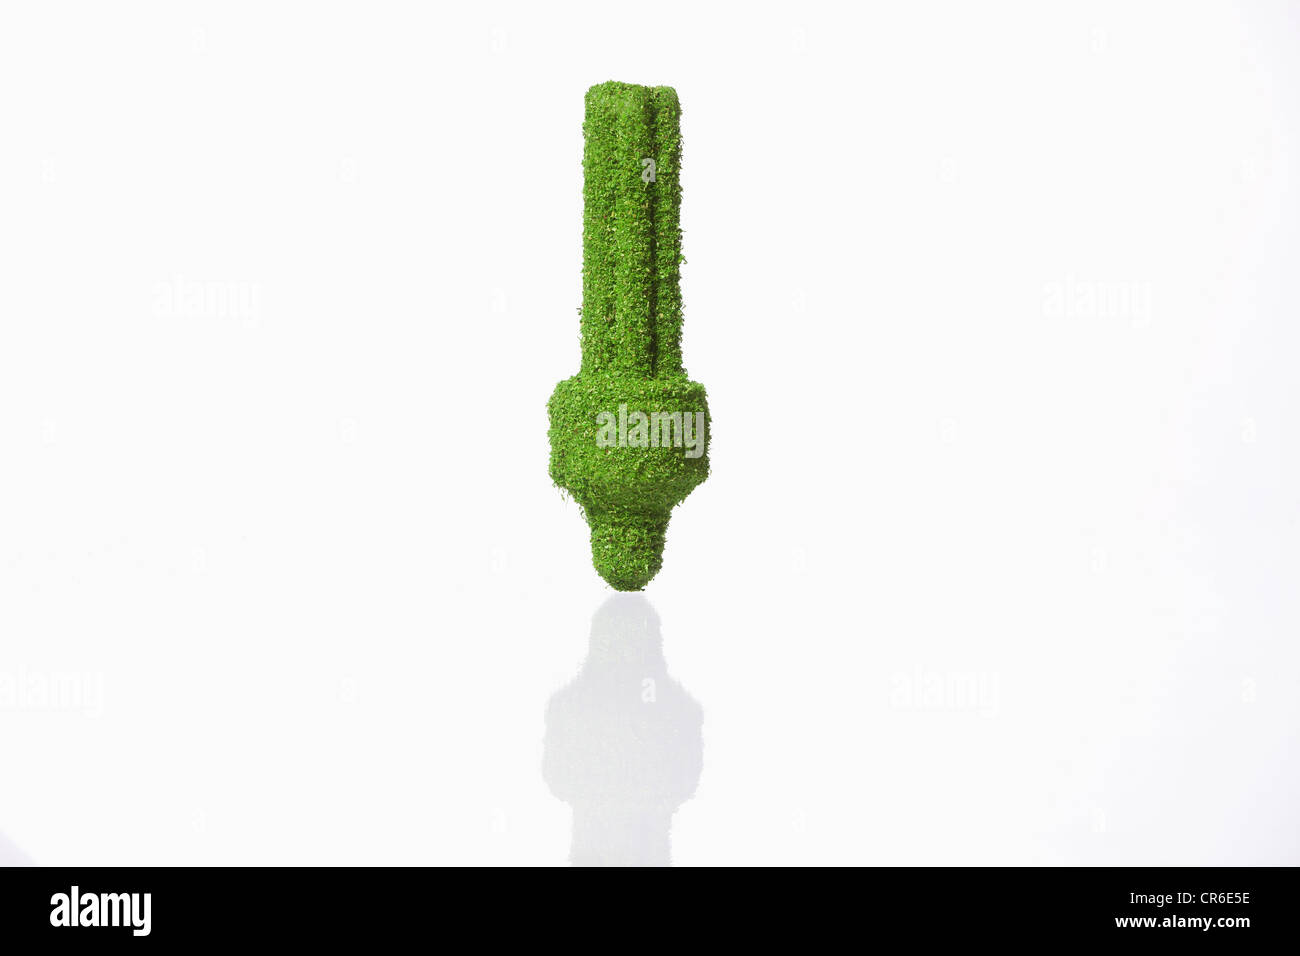 Energy efficient lightbulb covered with grass on white background - Stock Image